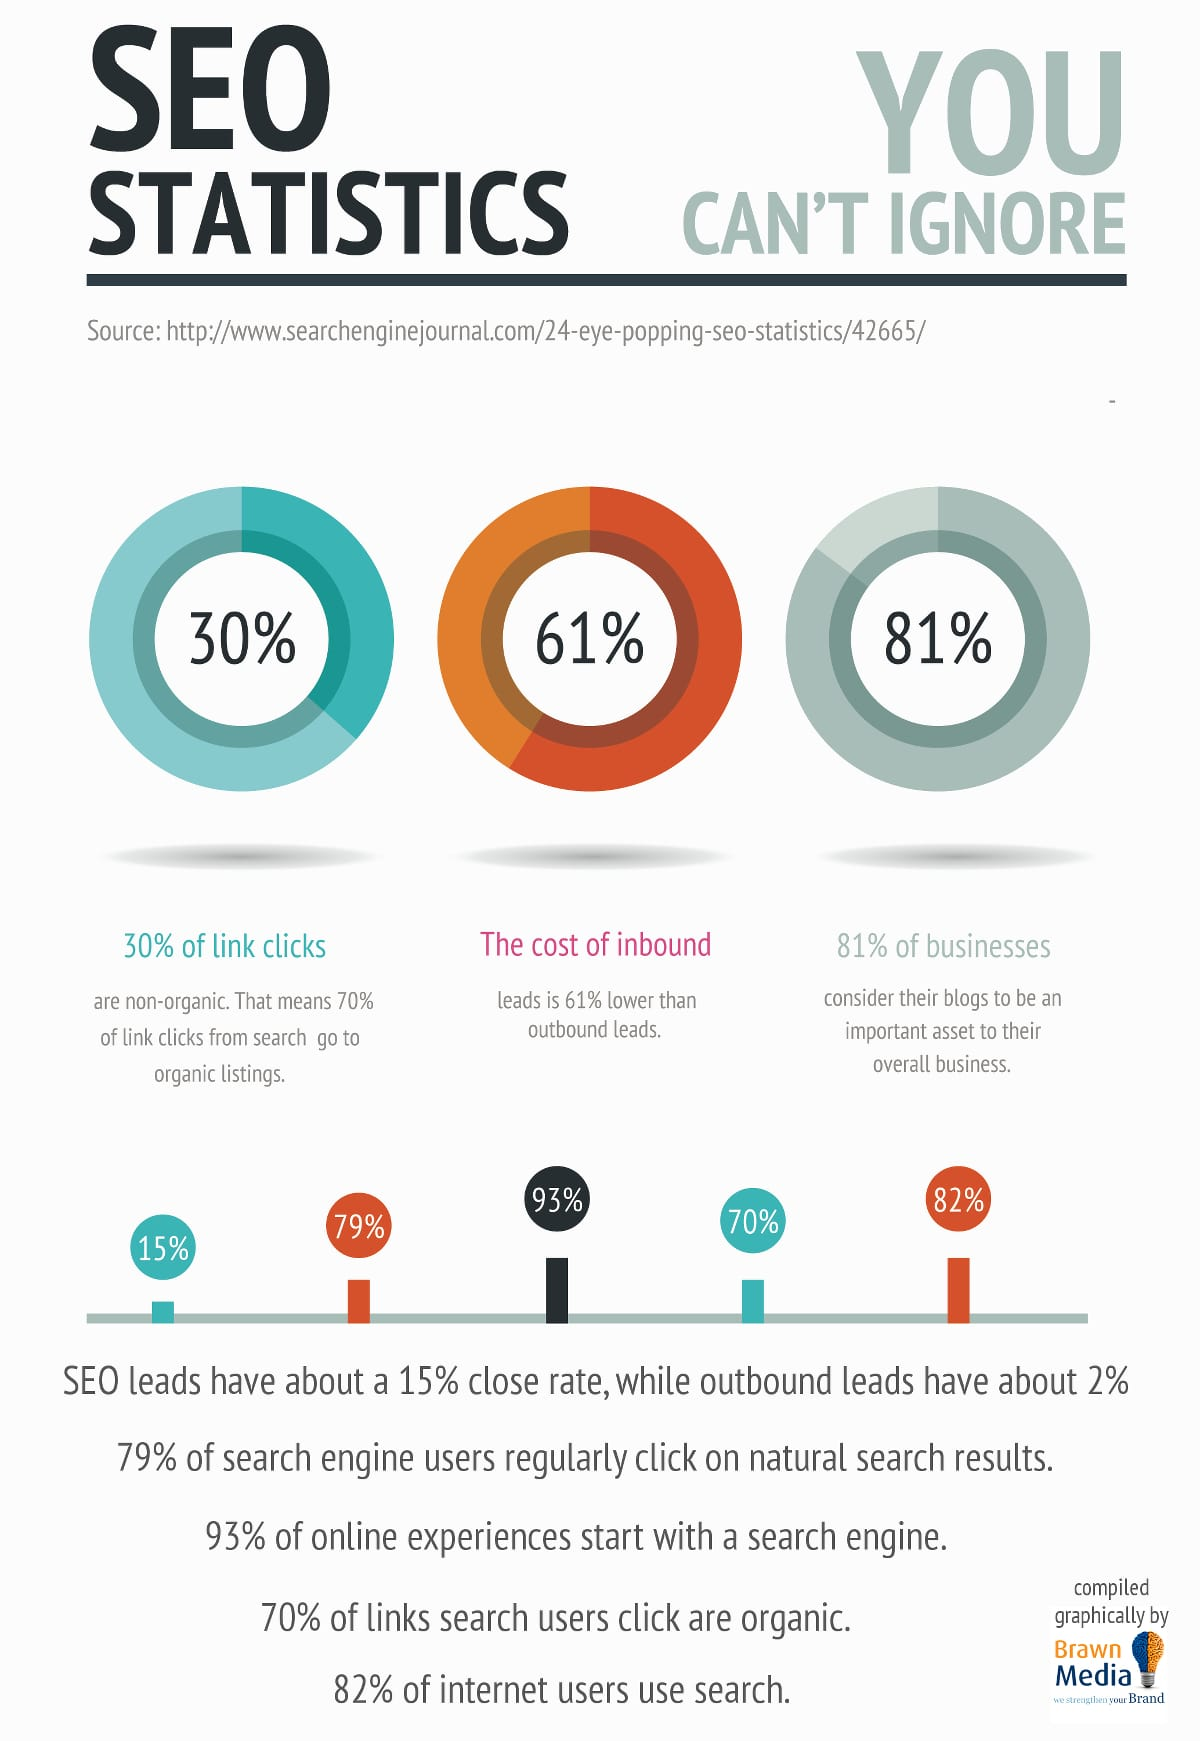 statistics about SEO